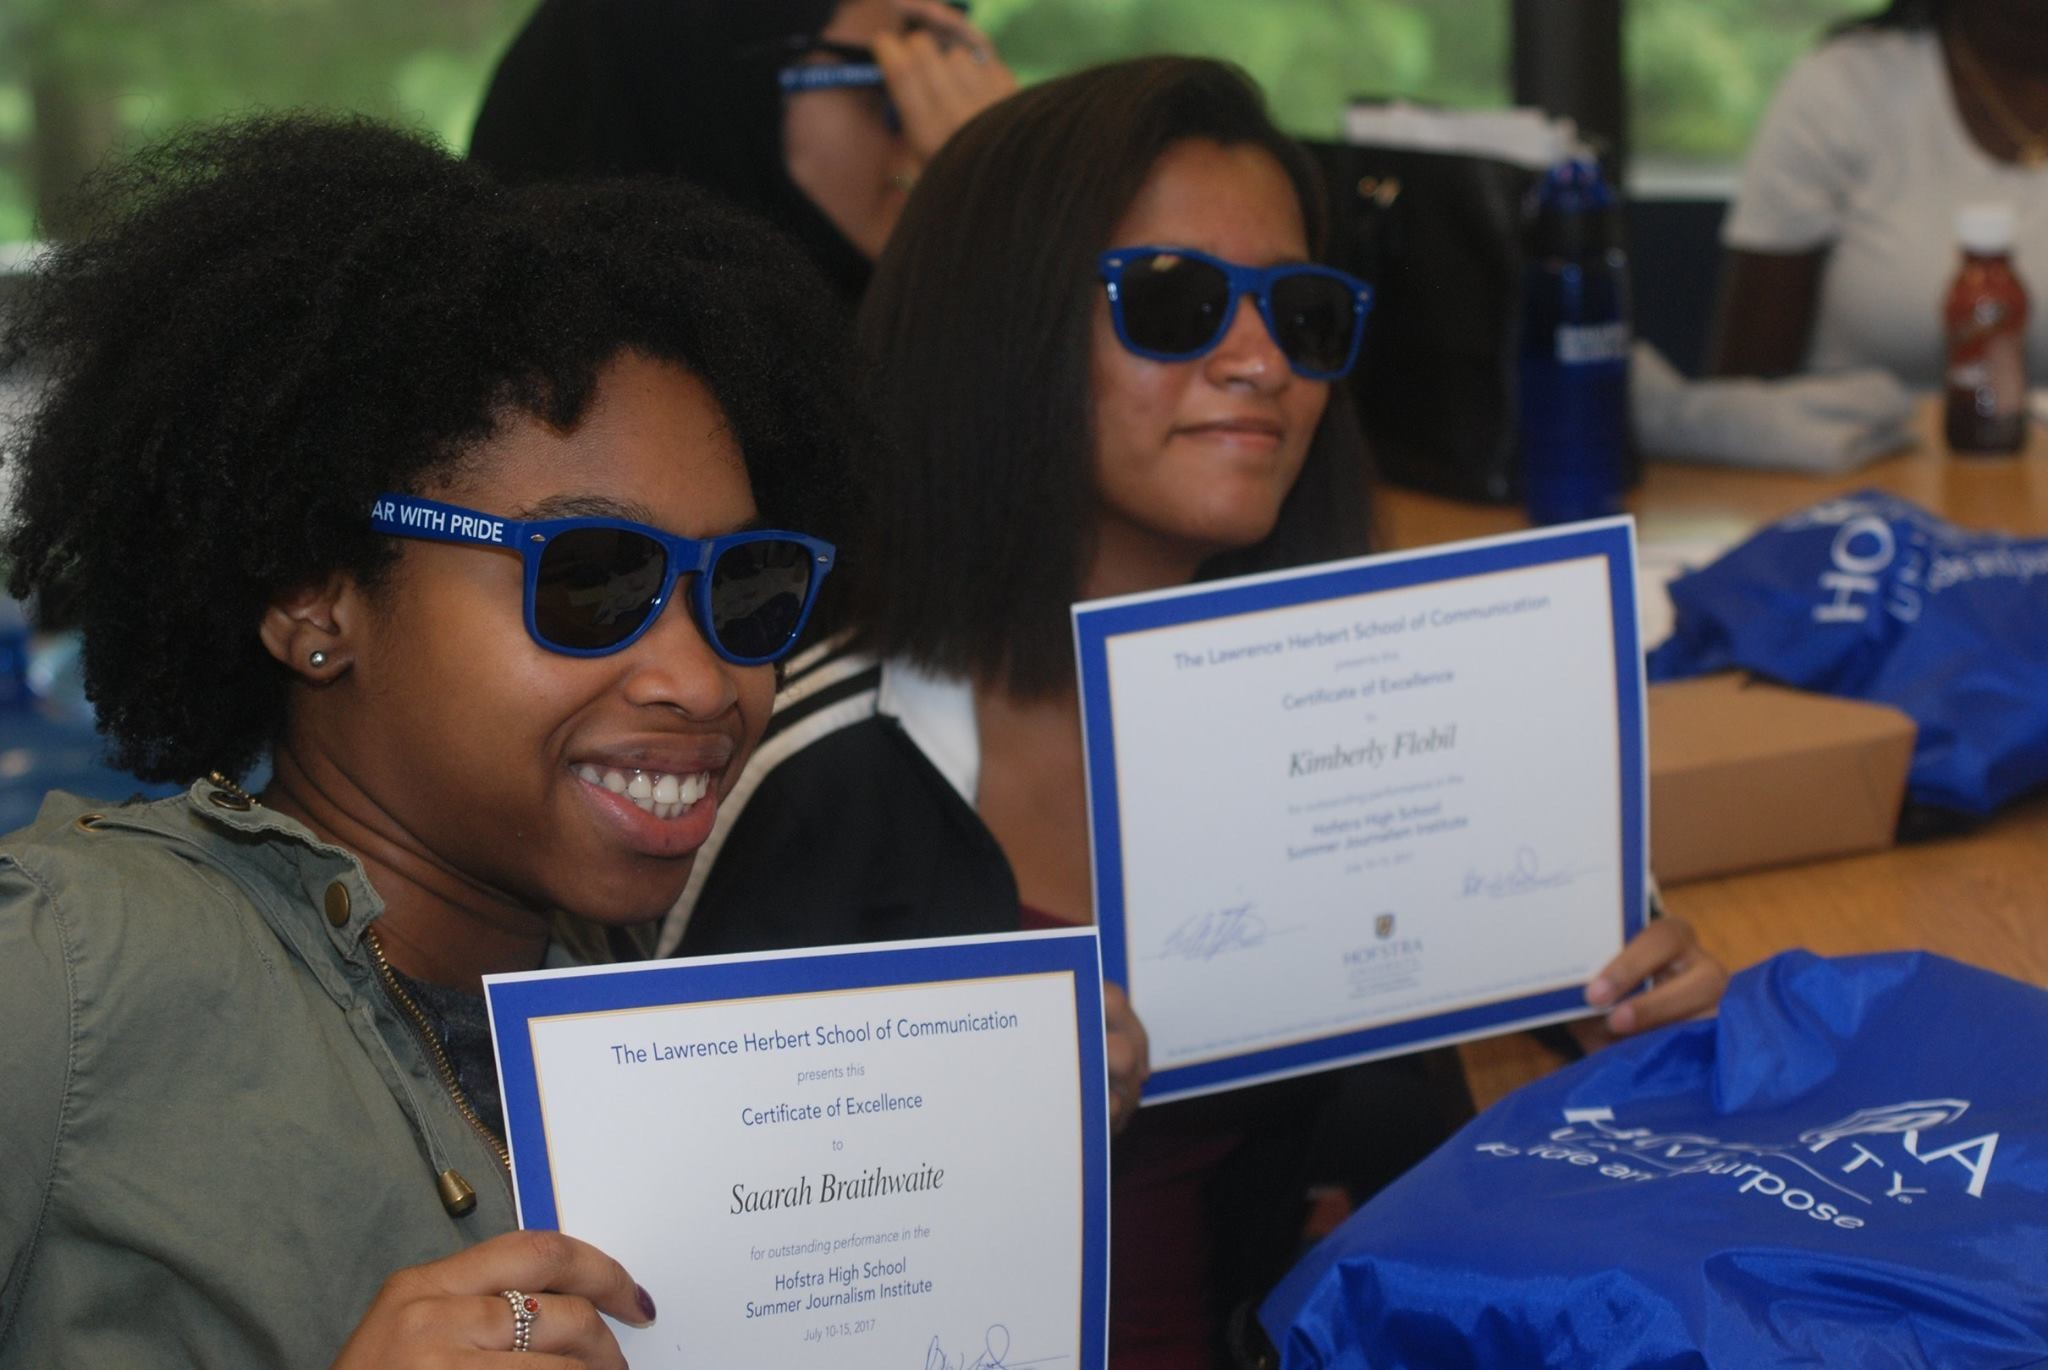 Saarah Braithwaite, left, was a recent participant in the Hofstra University High School Summer Journalism Institute, funded by the New York Press Association and Press Club of Long Island. Braithwaite, an Elmont High School senior, is seen here  on the Institute's final day with schoolmate Kimberly Flobil.